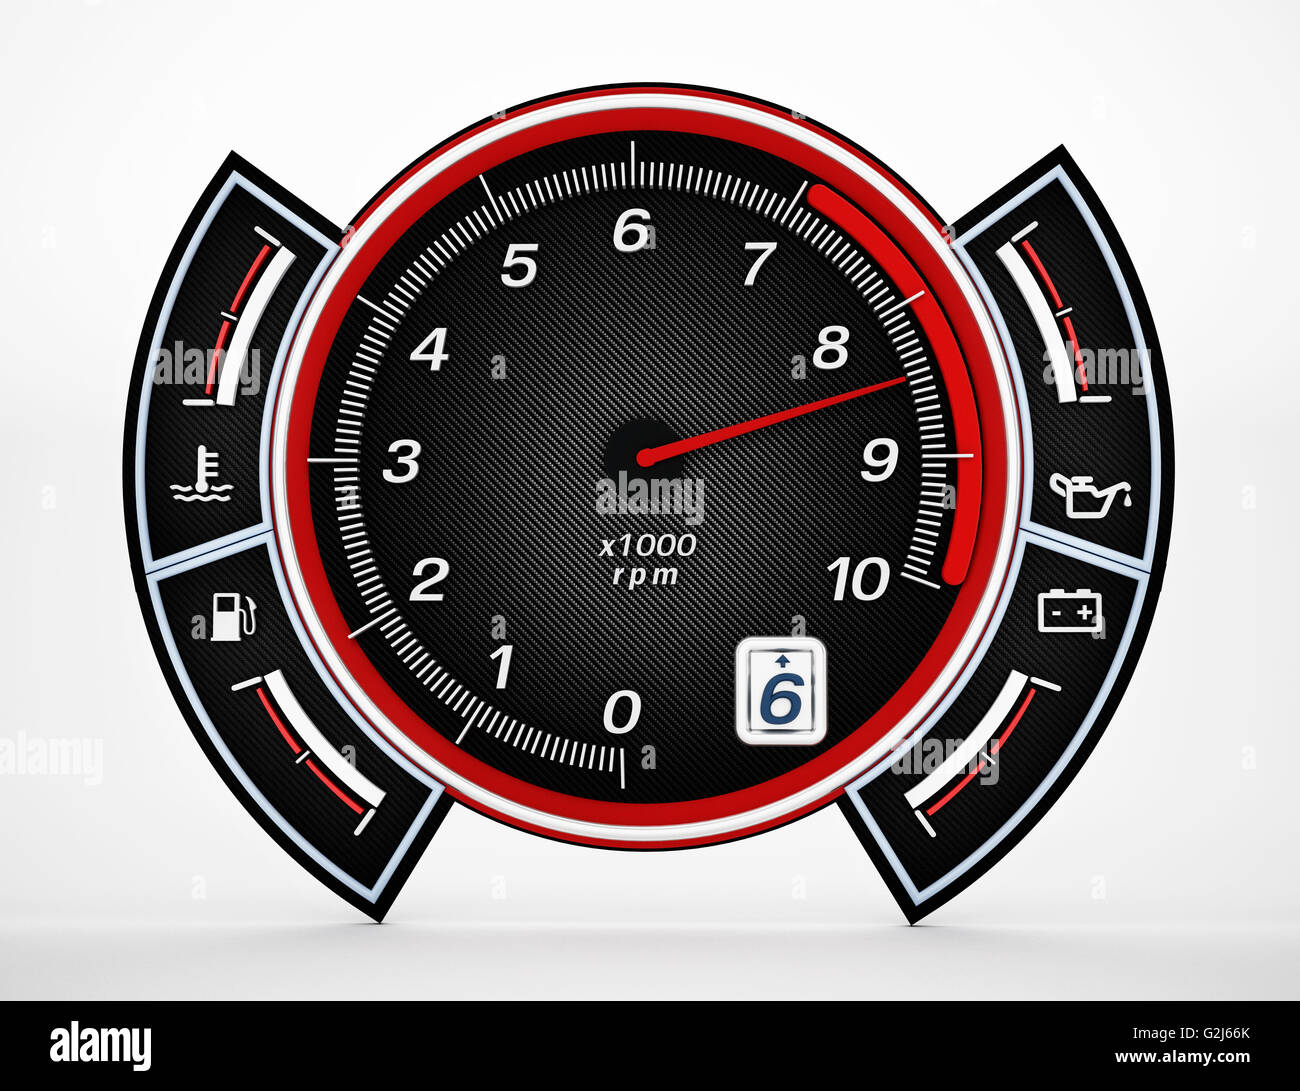 Engine RPM gauge with needle pointing high revs. 3D illustration. - Stock Image